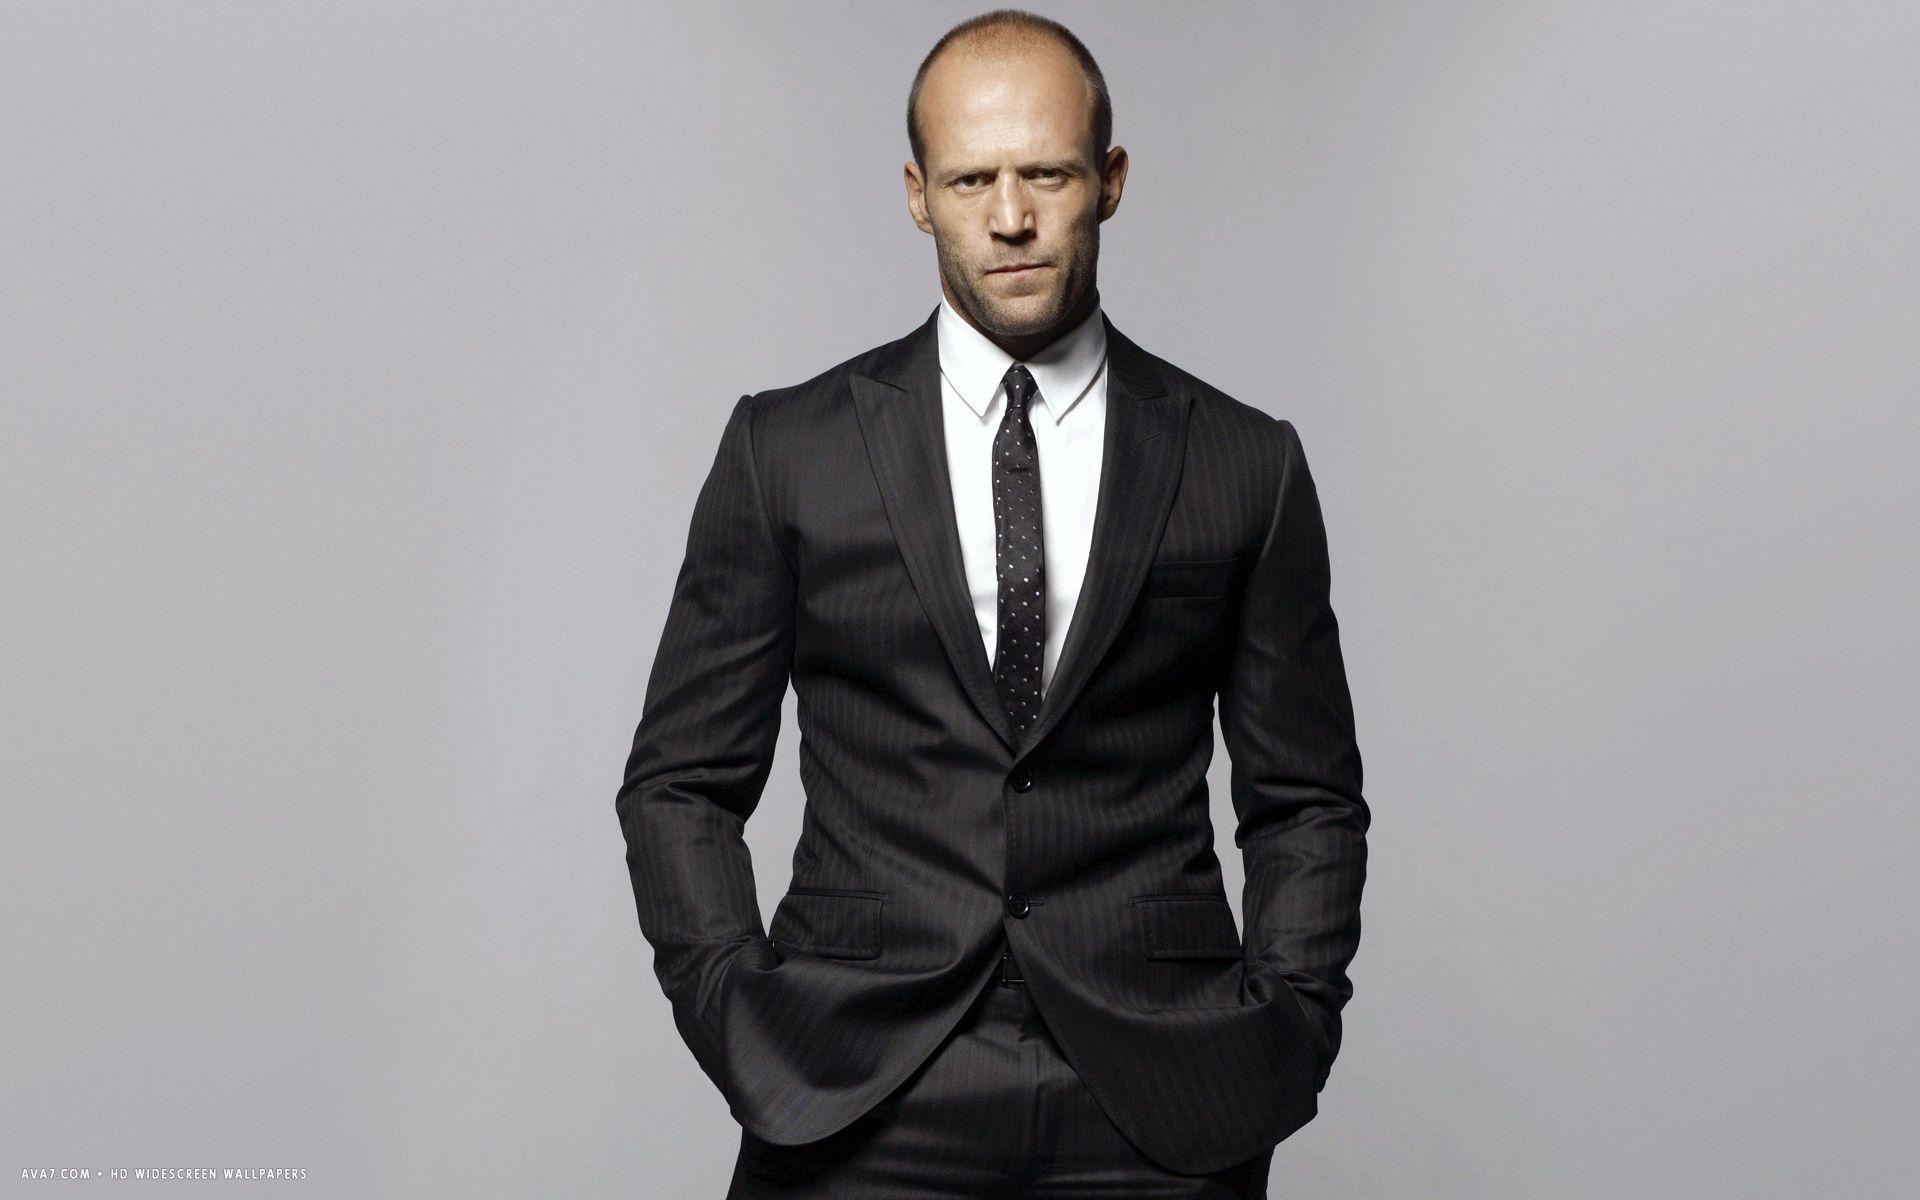 Jason Statham HD Wallpapers - HD Wallpapers Inn